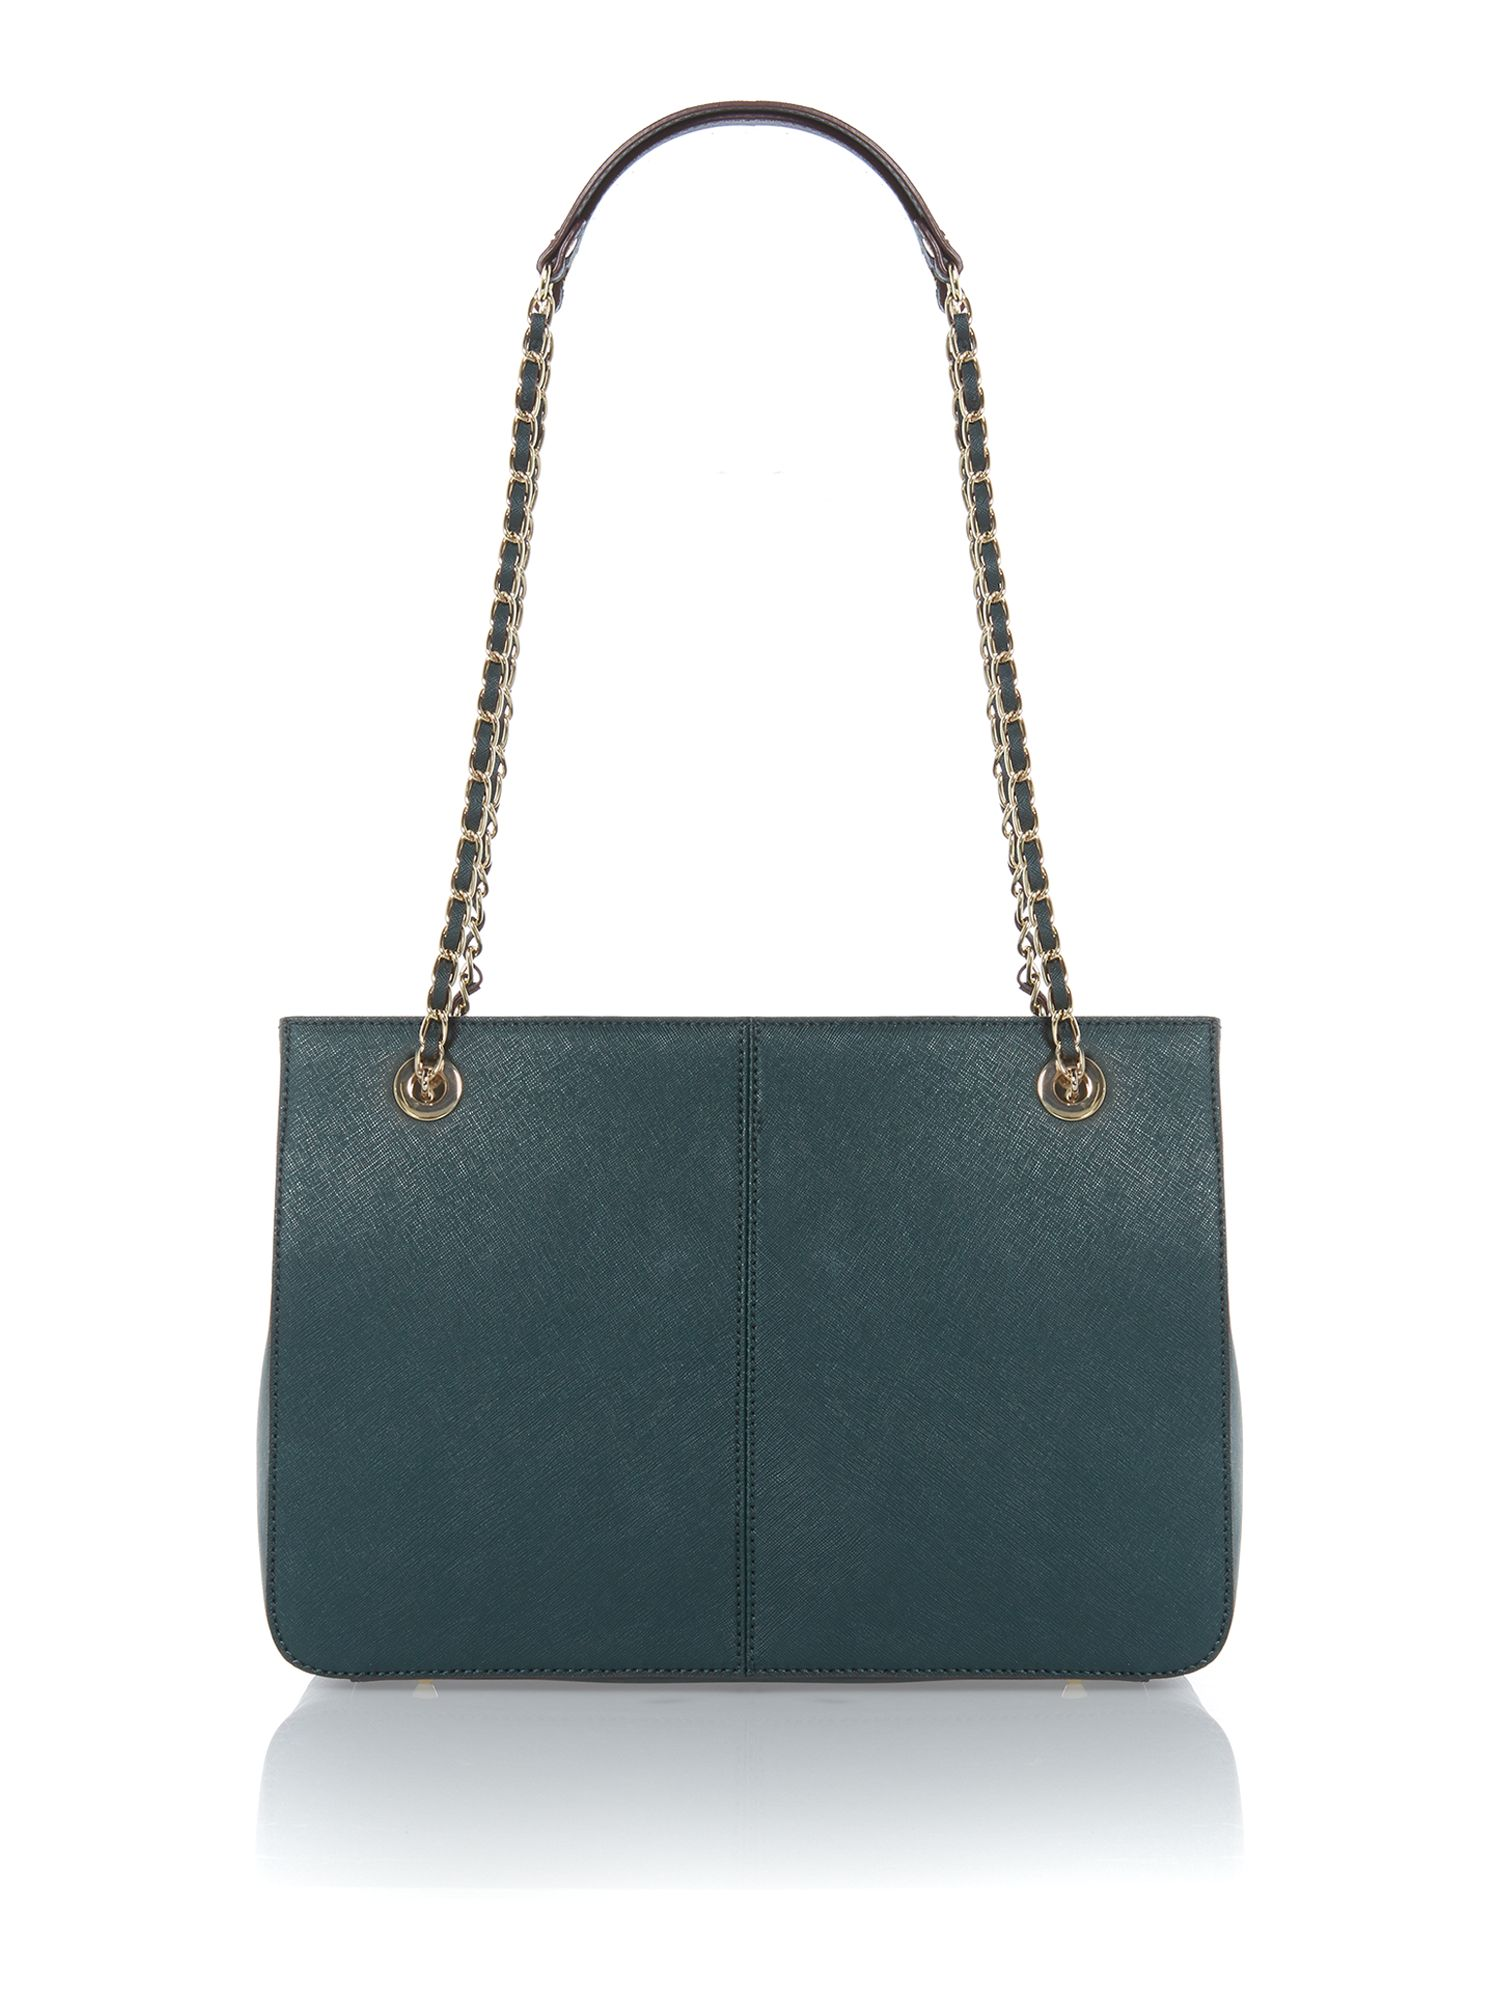 Saffiano green medium chain tote bag